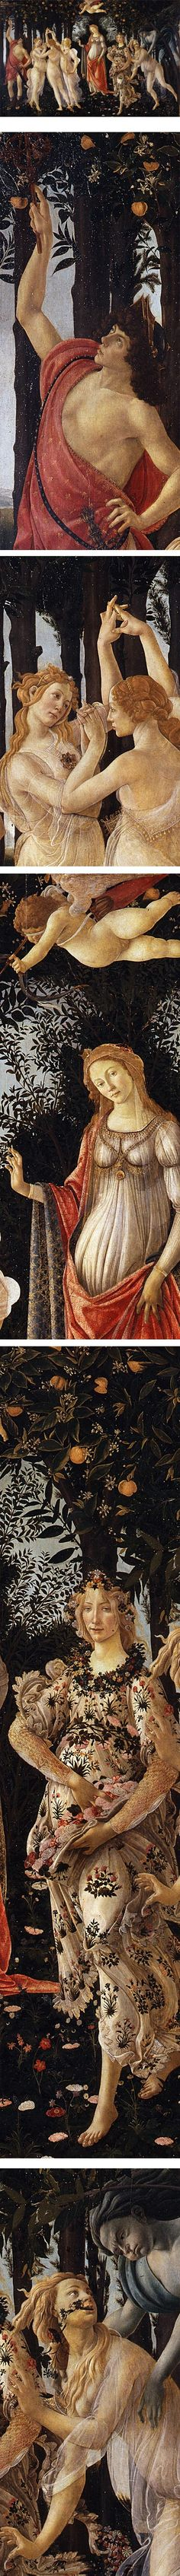 Eye Candy for Today: Botticelli's Primavera